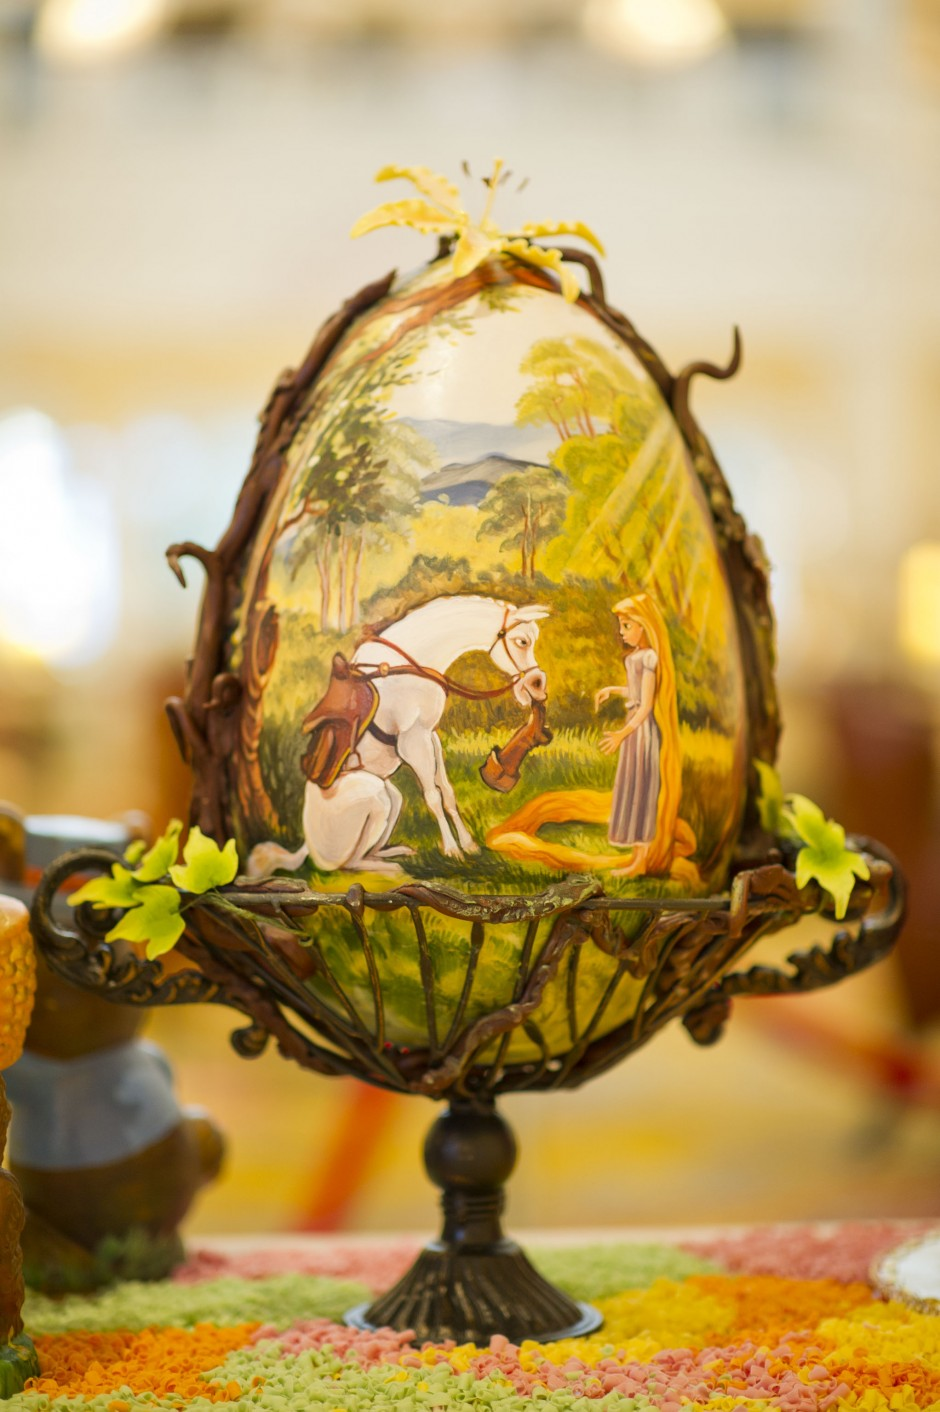 disney tangled rapunzel chocolate easter egg